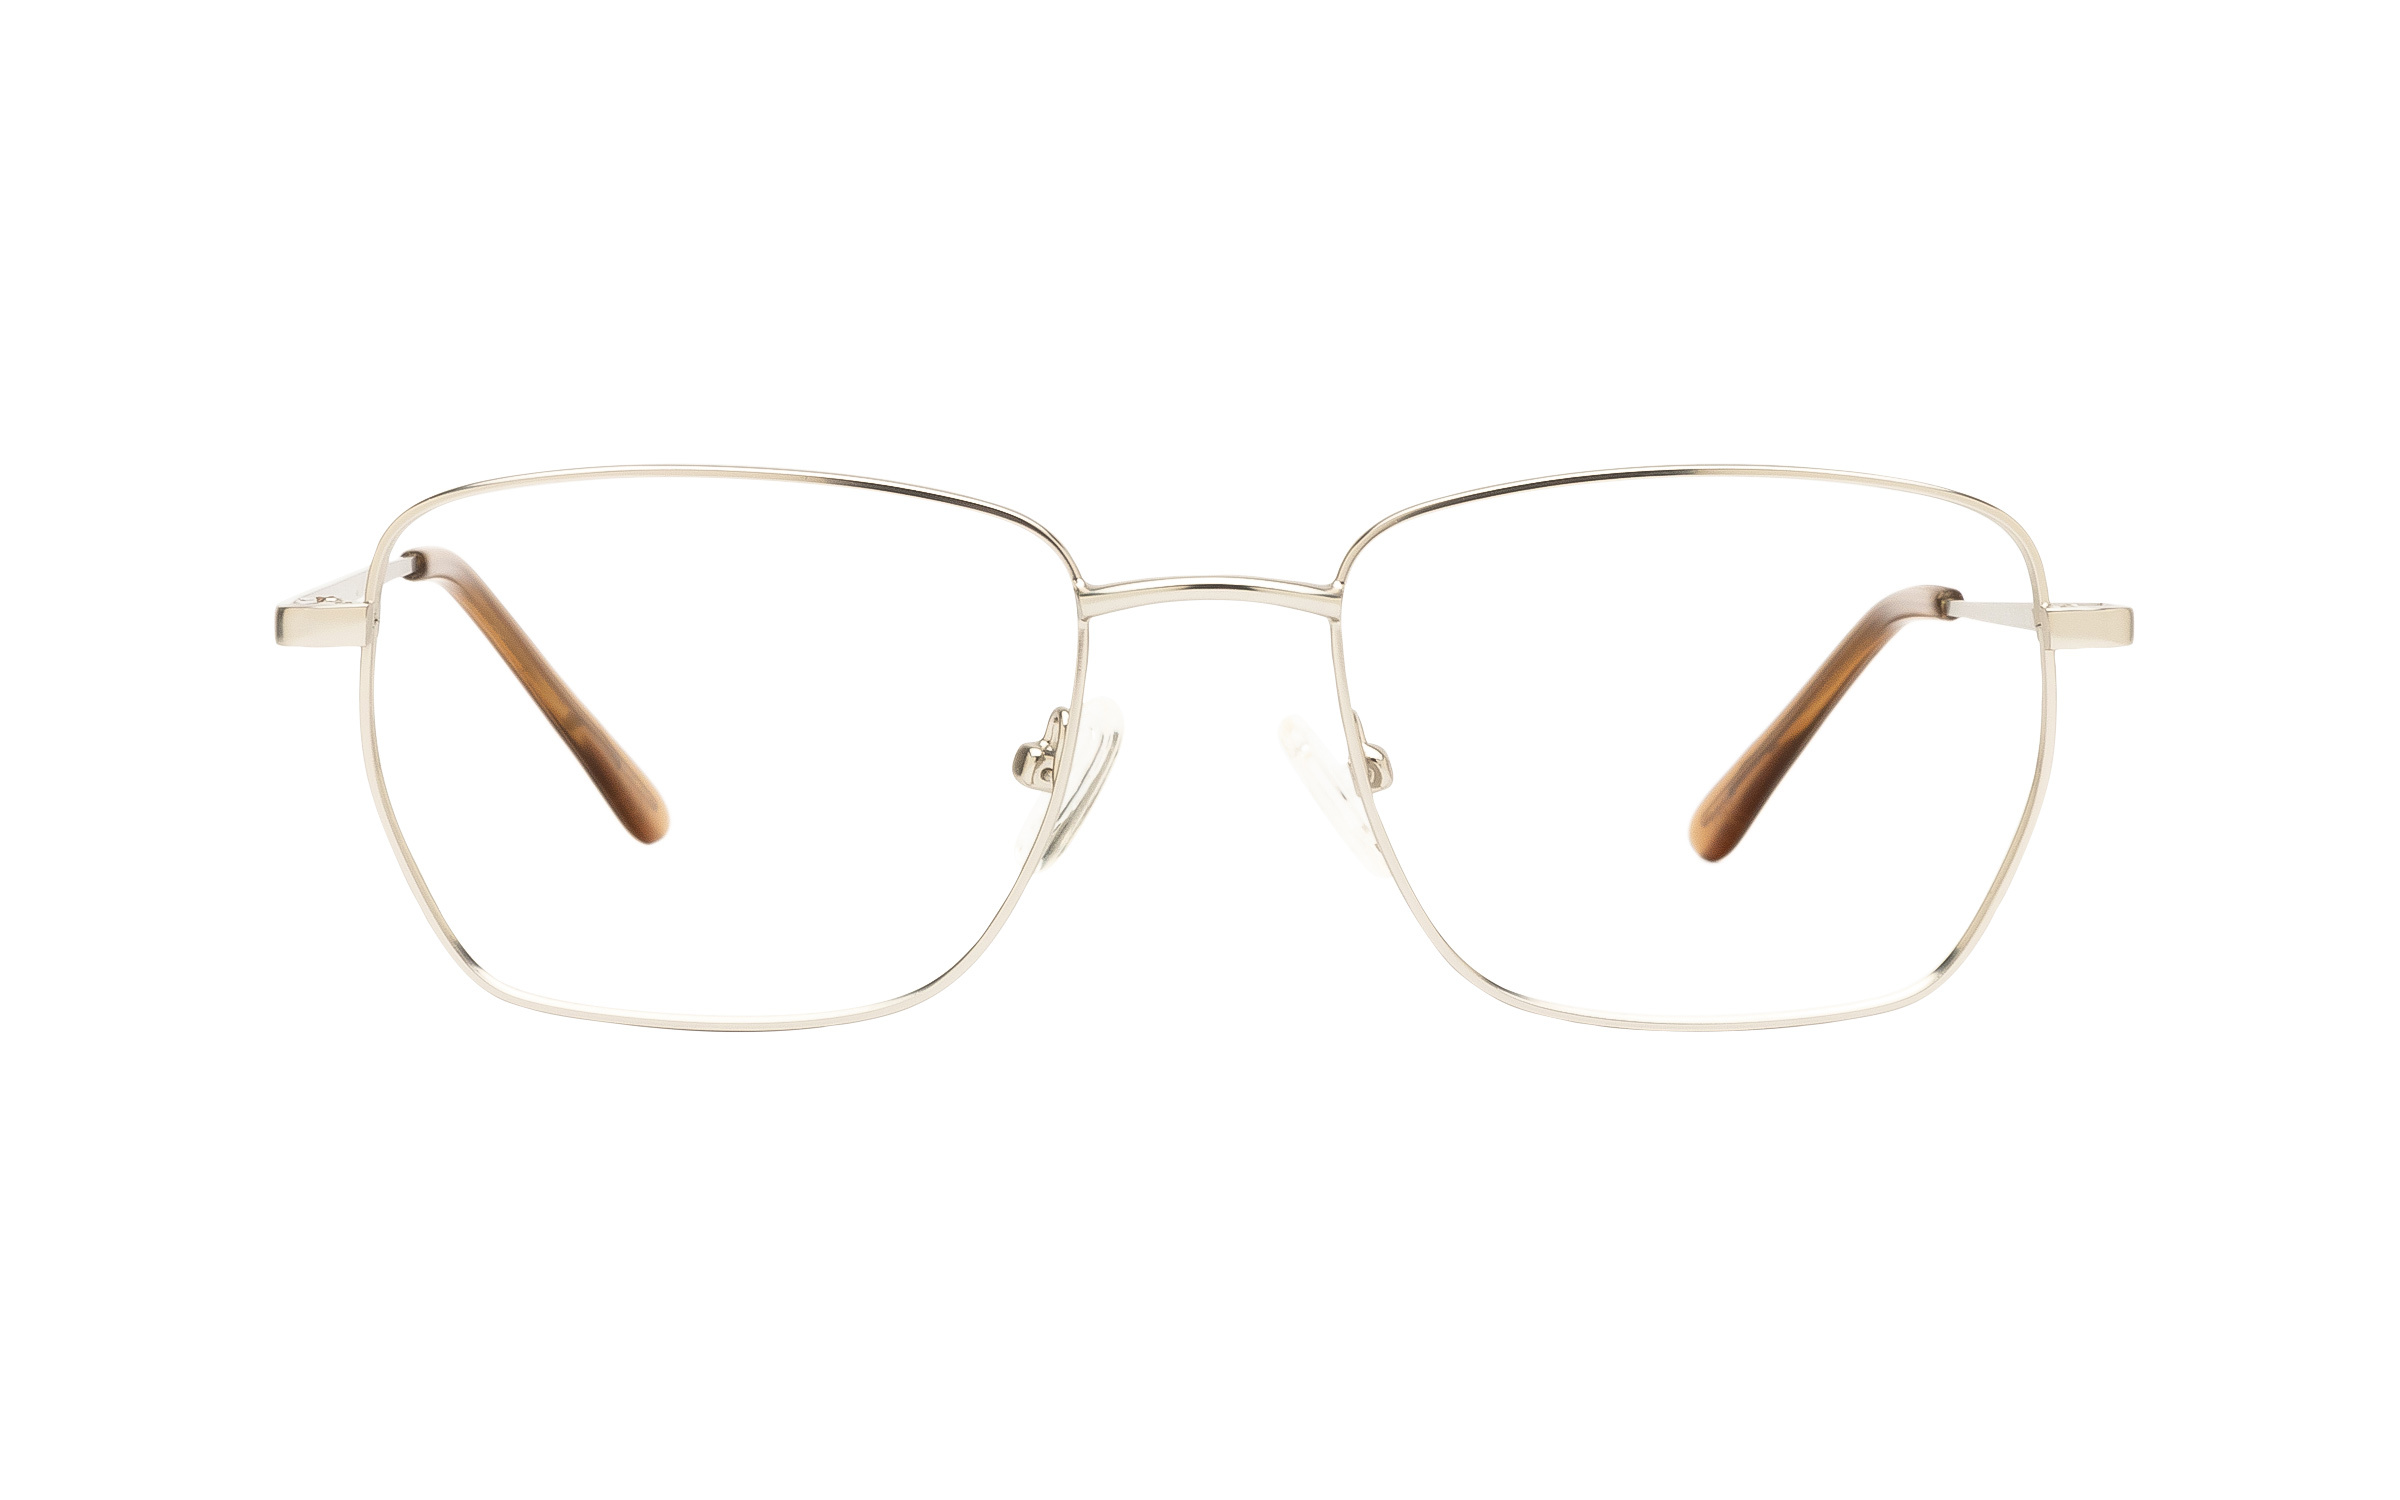 Clearly Basics McAdam CLS029 C02 (52) Eyeglasses and Frame in Matte Silver | Plastic/Metal